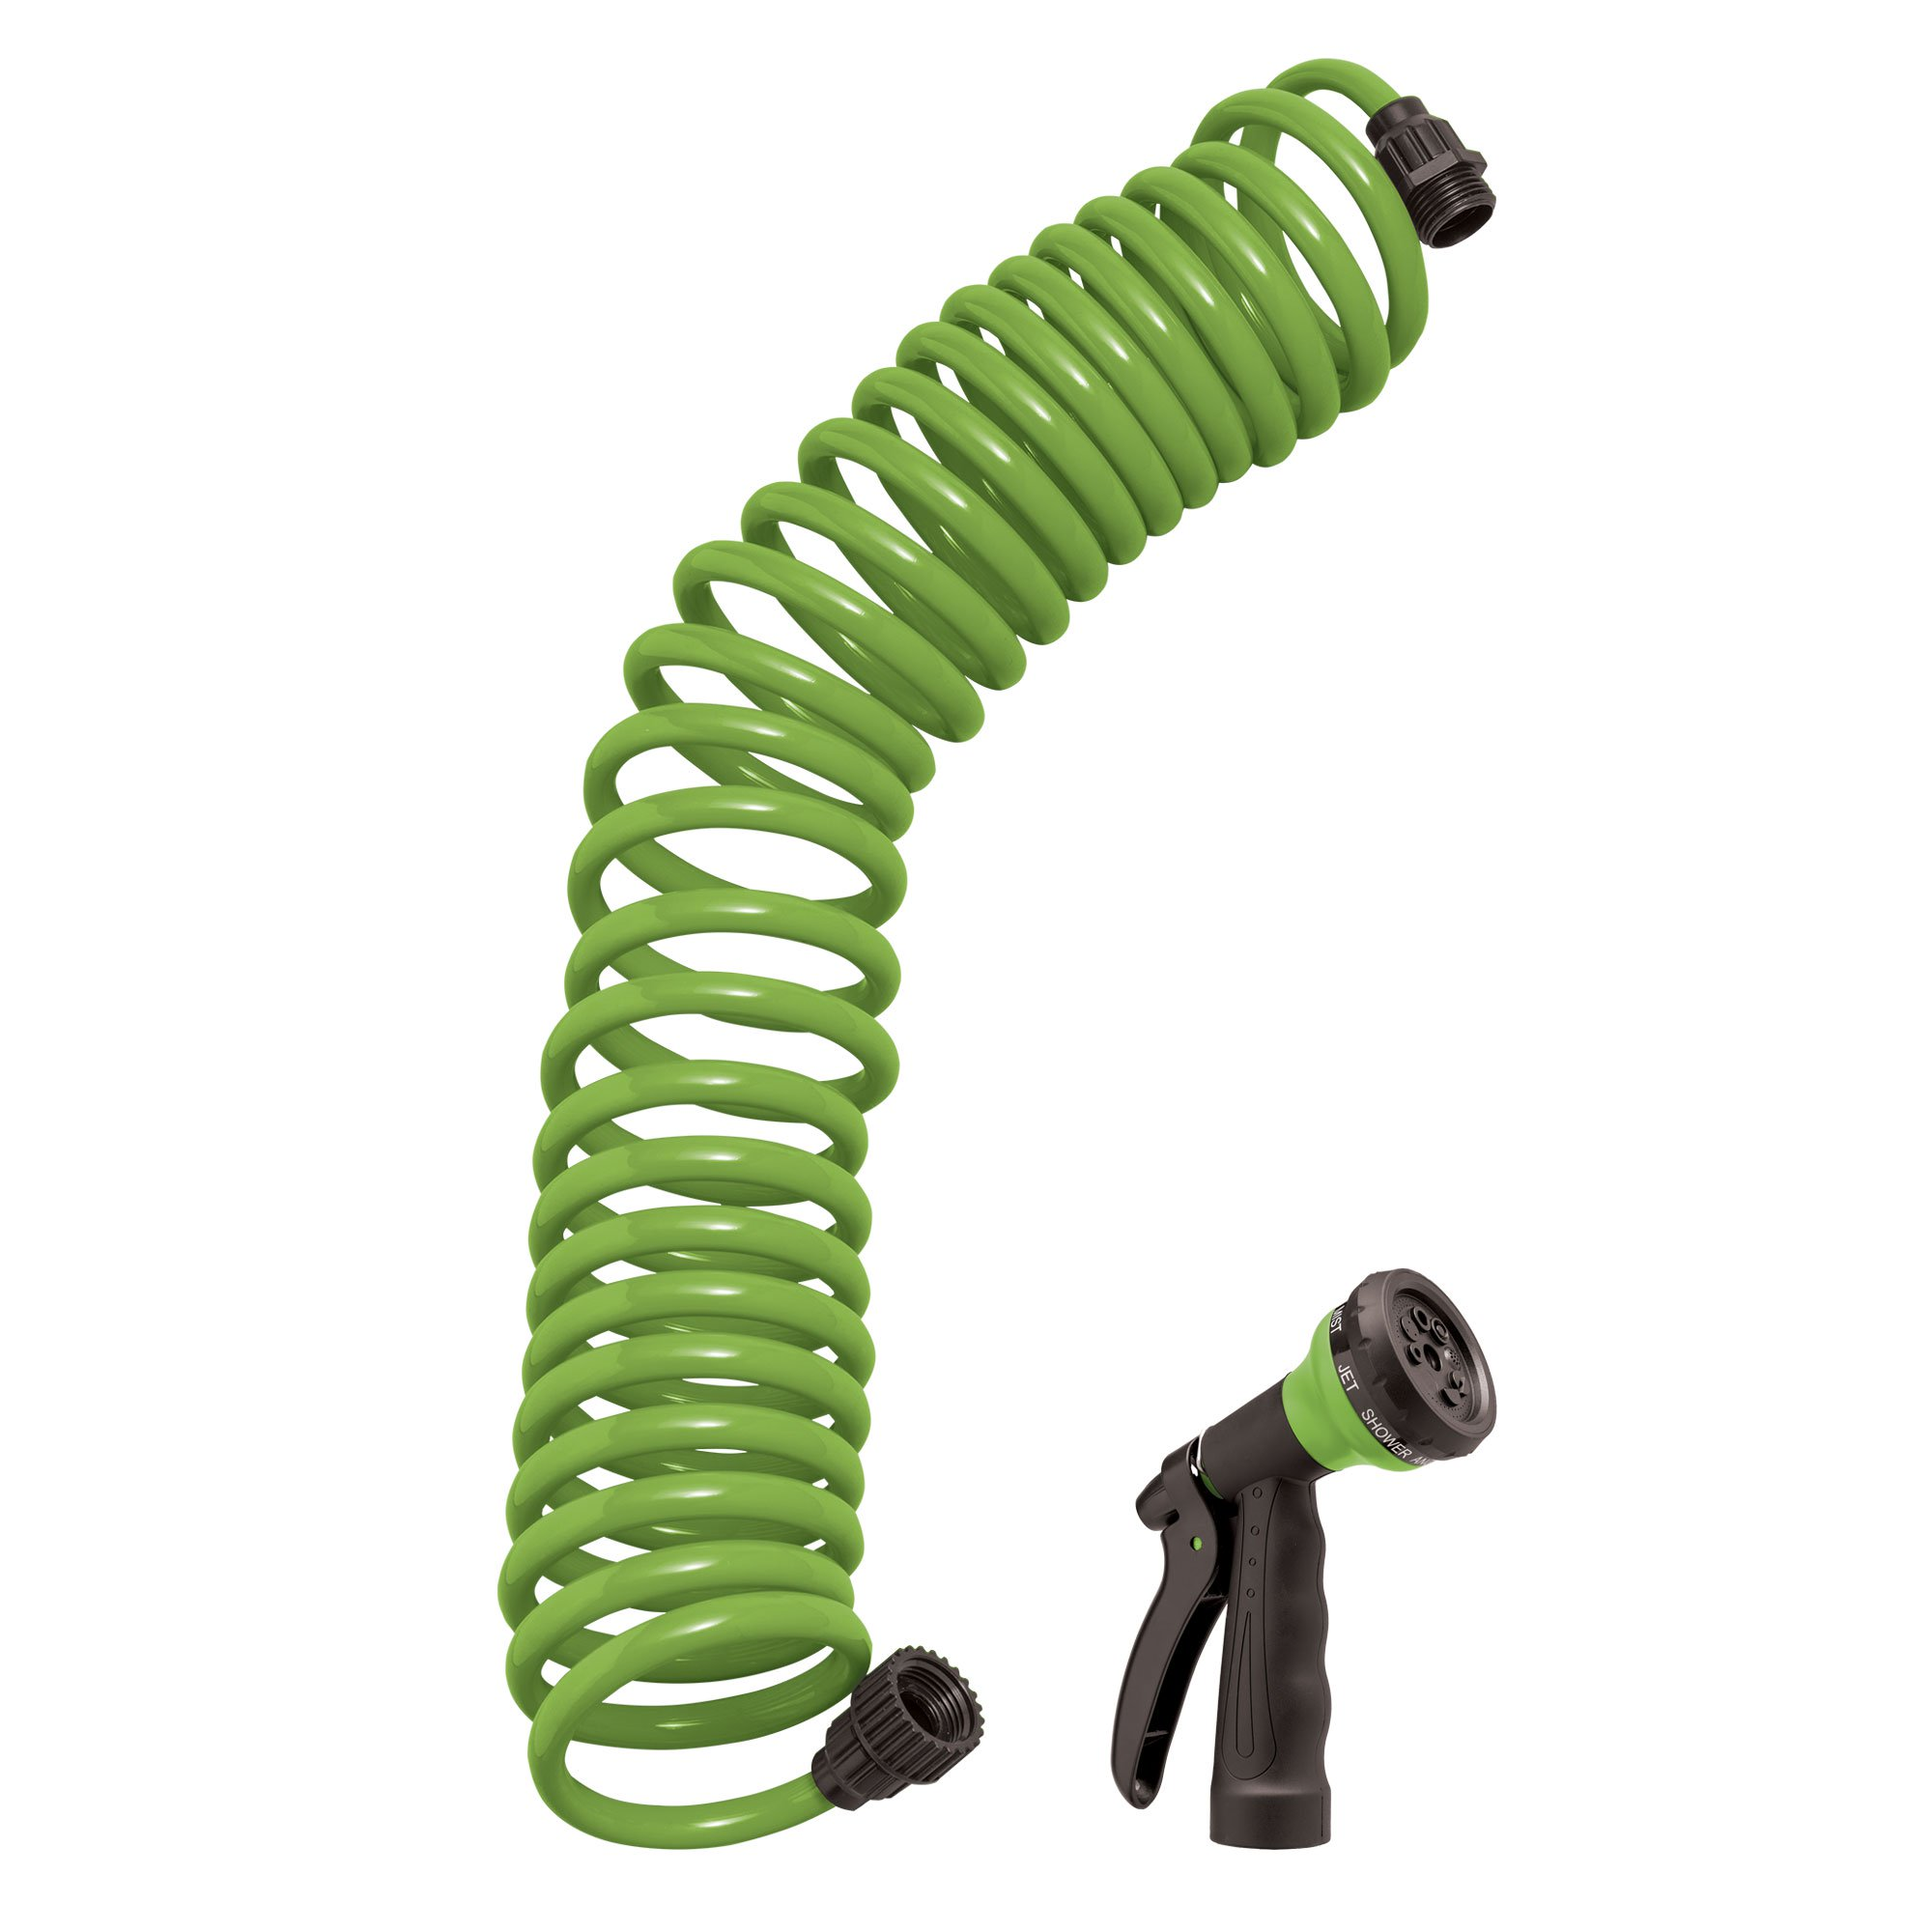 Orbit 25 Foot Green Coil Garden Hose with ABS Threads and 8 Spray Pattern Nozzle